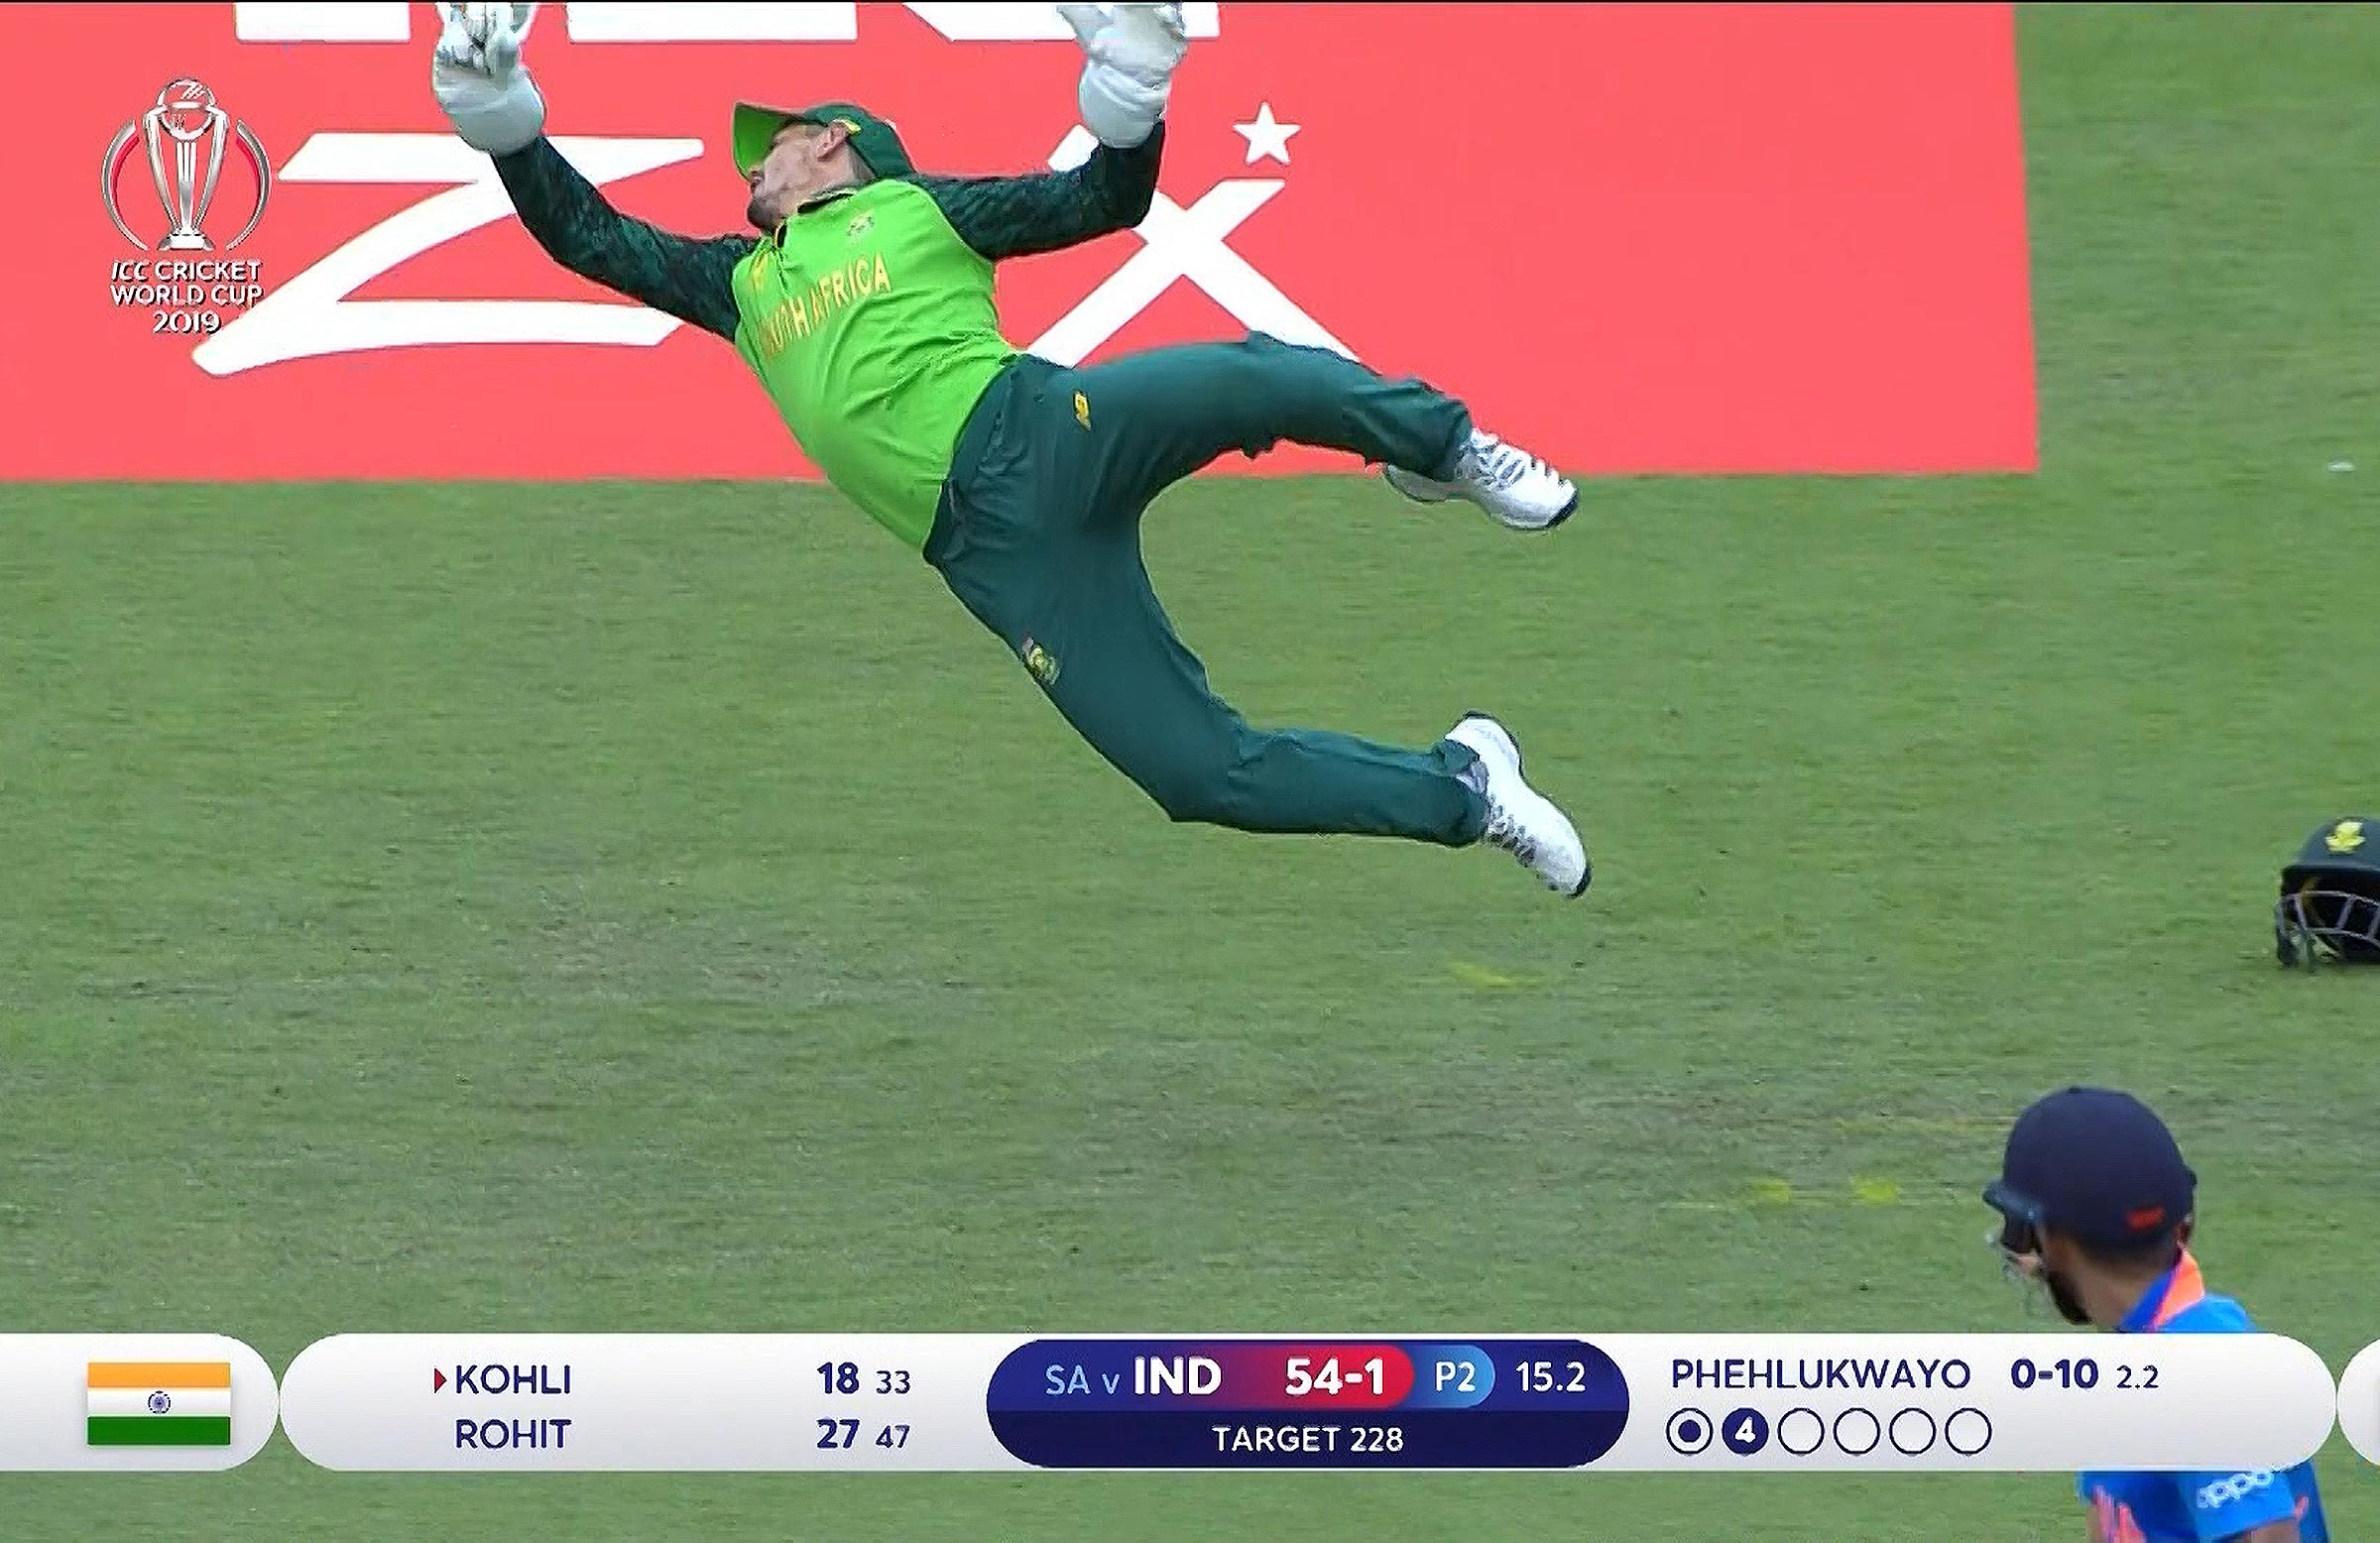 Kohli watches and De Kock pouches the catch